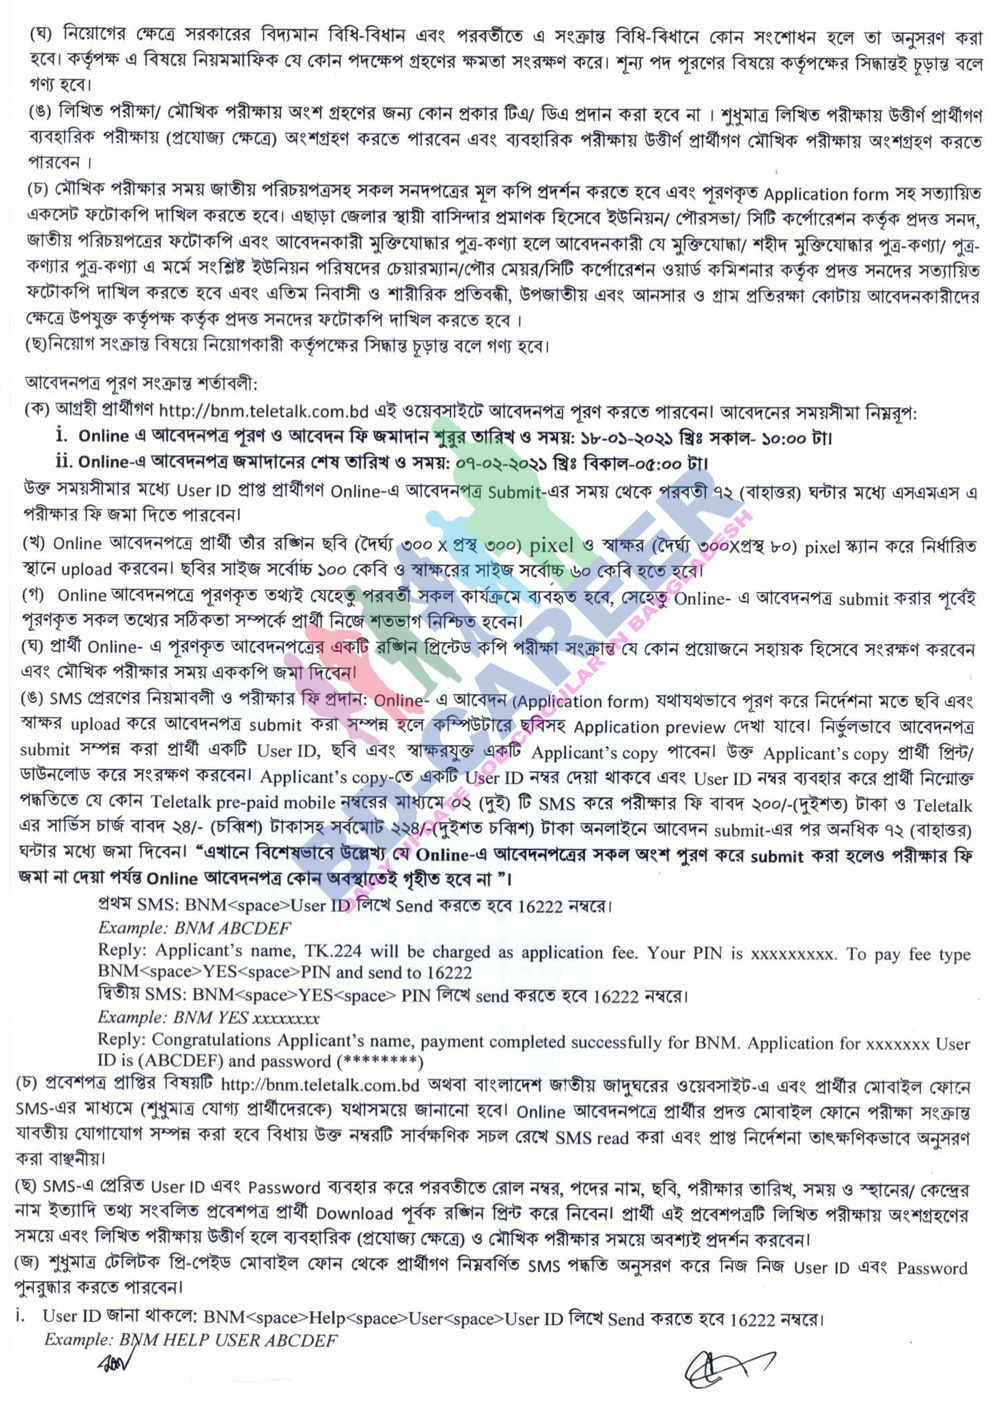 Bangladesh national museum job circular 2021